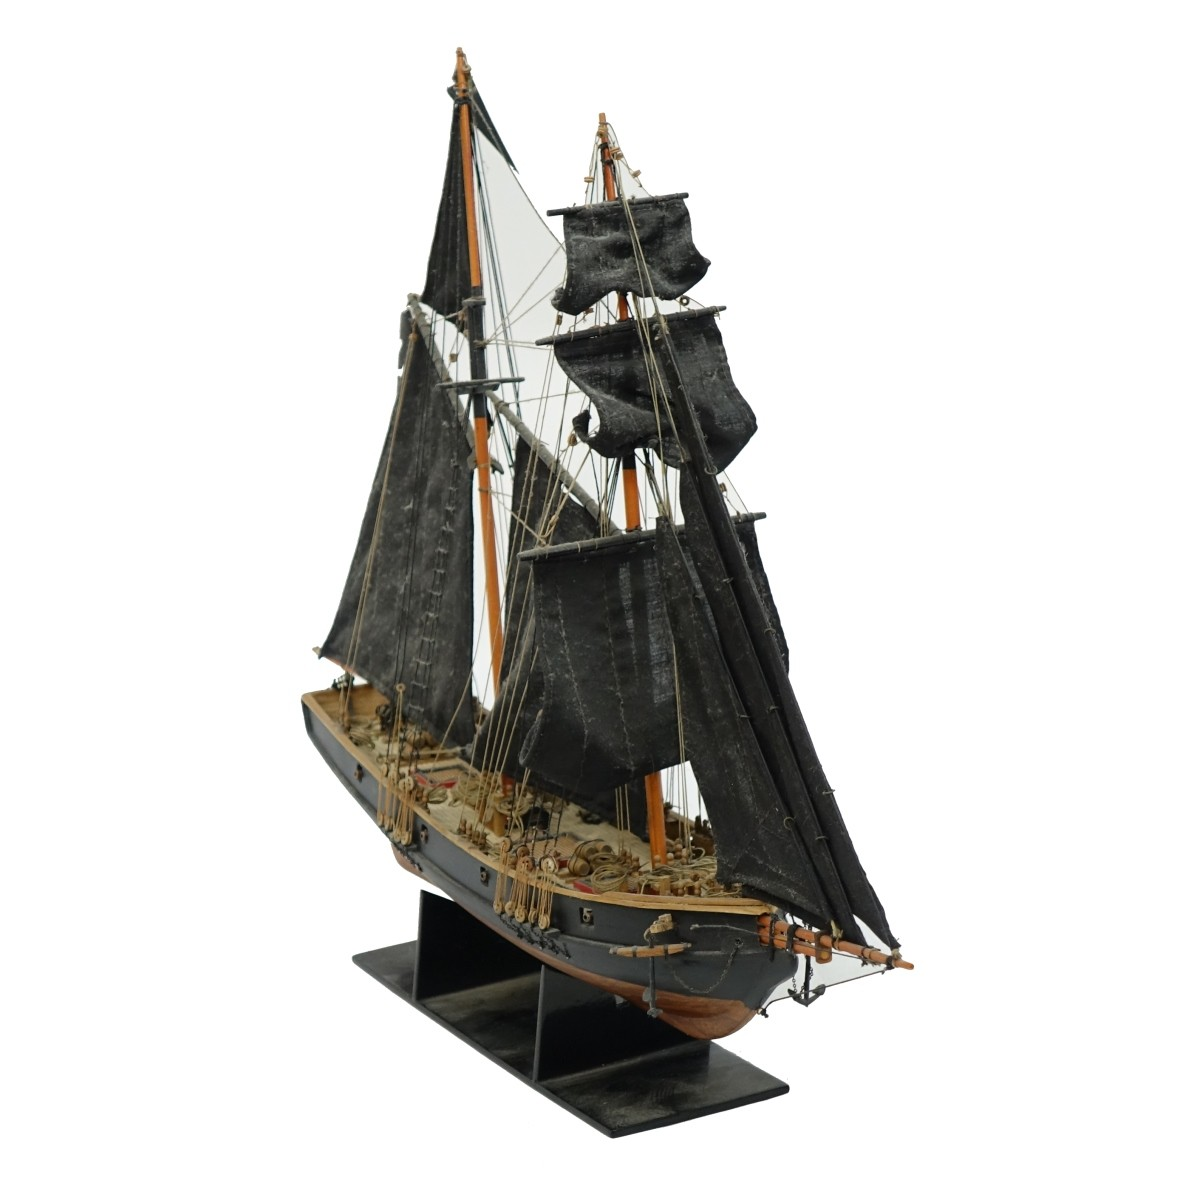 Ben Franklin's Black Prince Model Sailing Ship